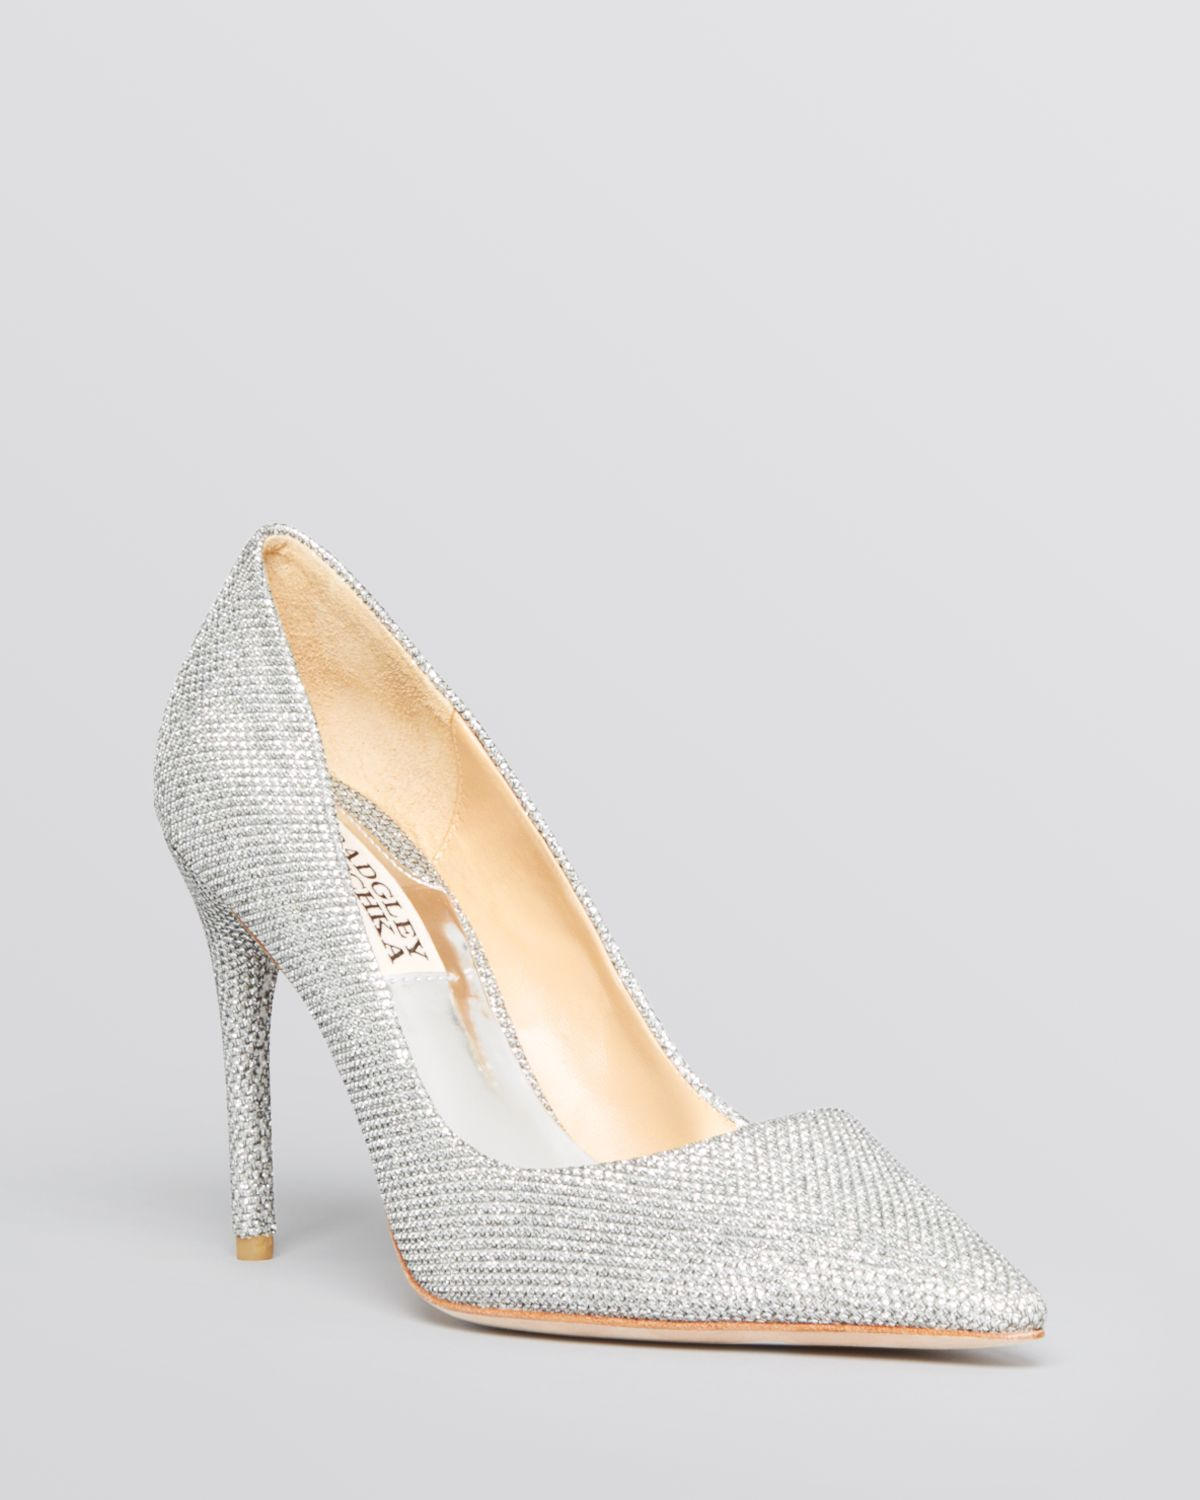 Badgley mischka Pointed Toe Evening Pumps - Luster High Heel in ...